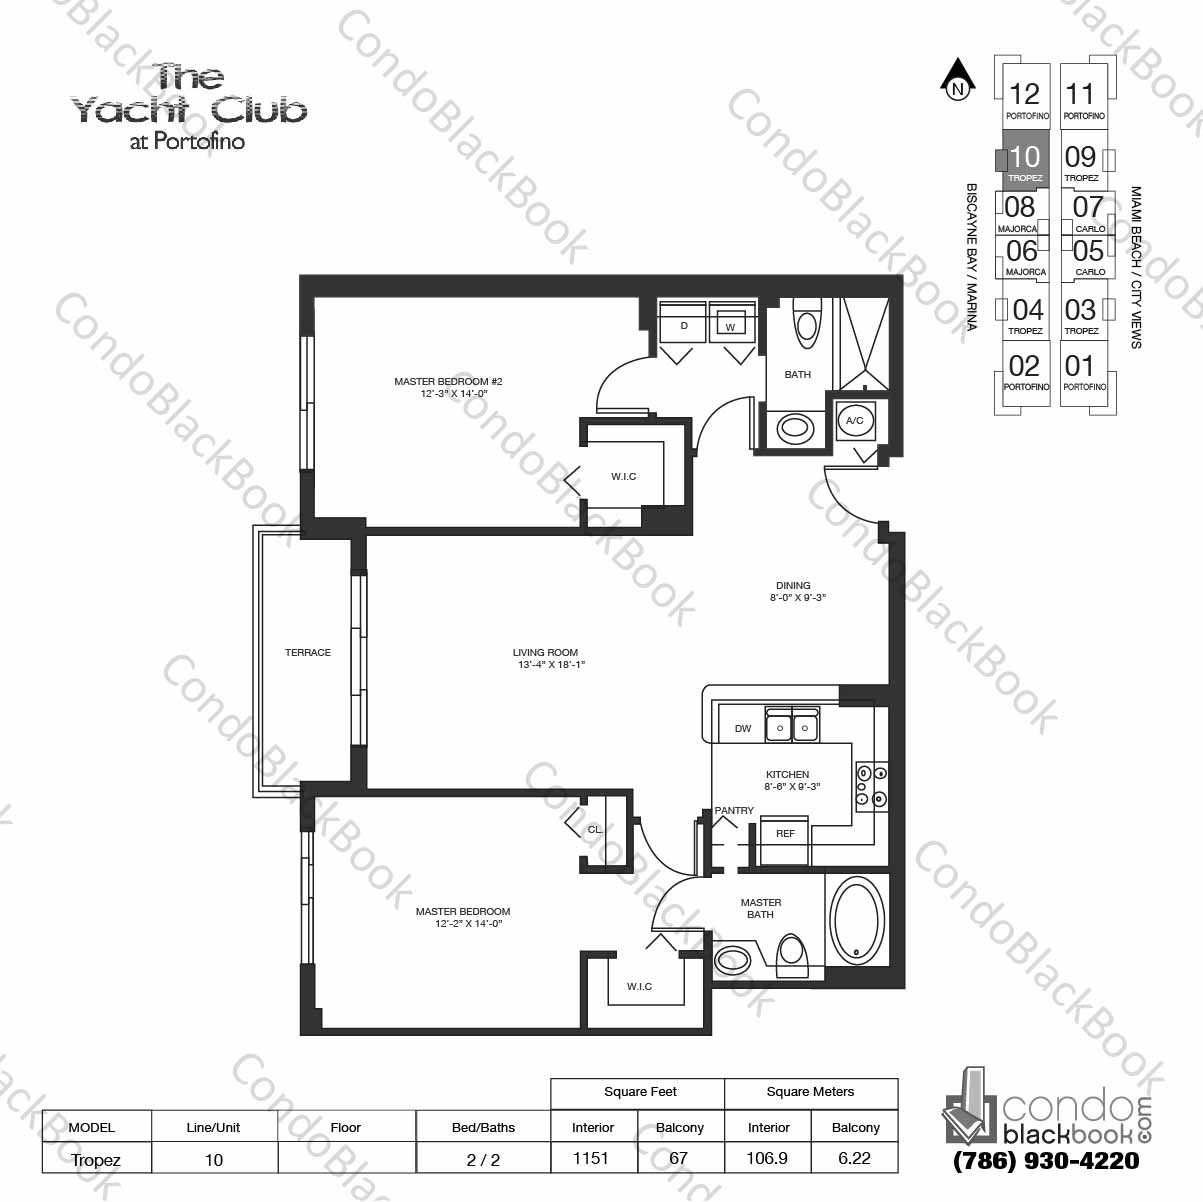 Floor plan for Yacht Club at Portofino South Beach Miami Beach, model Tropez, line 10, 2 / 2 bedrooms, 1151 sq ft